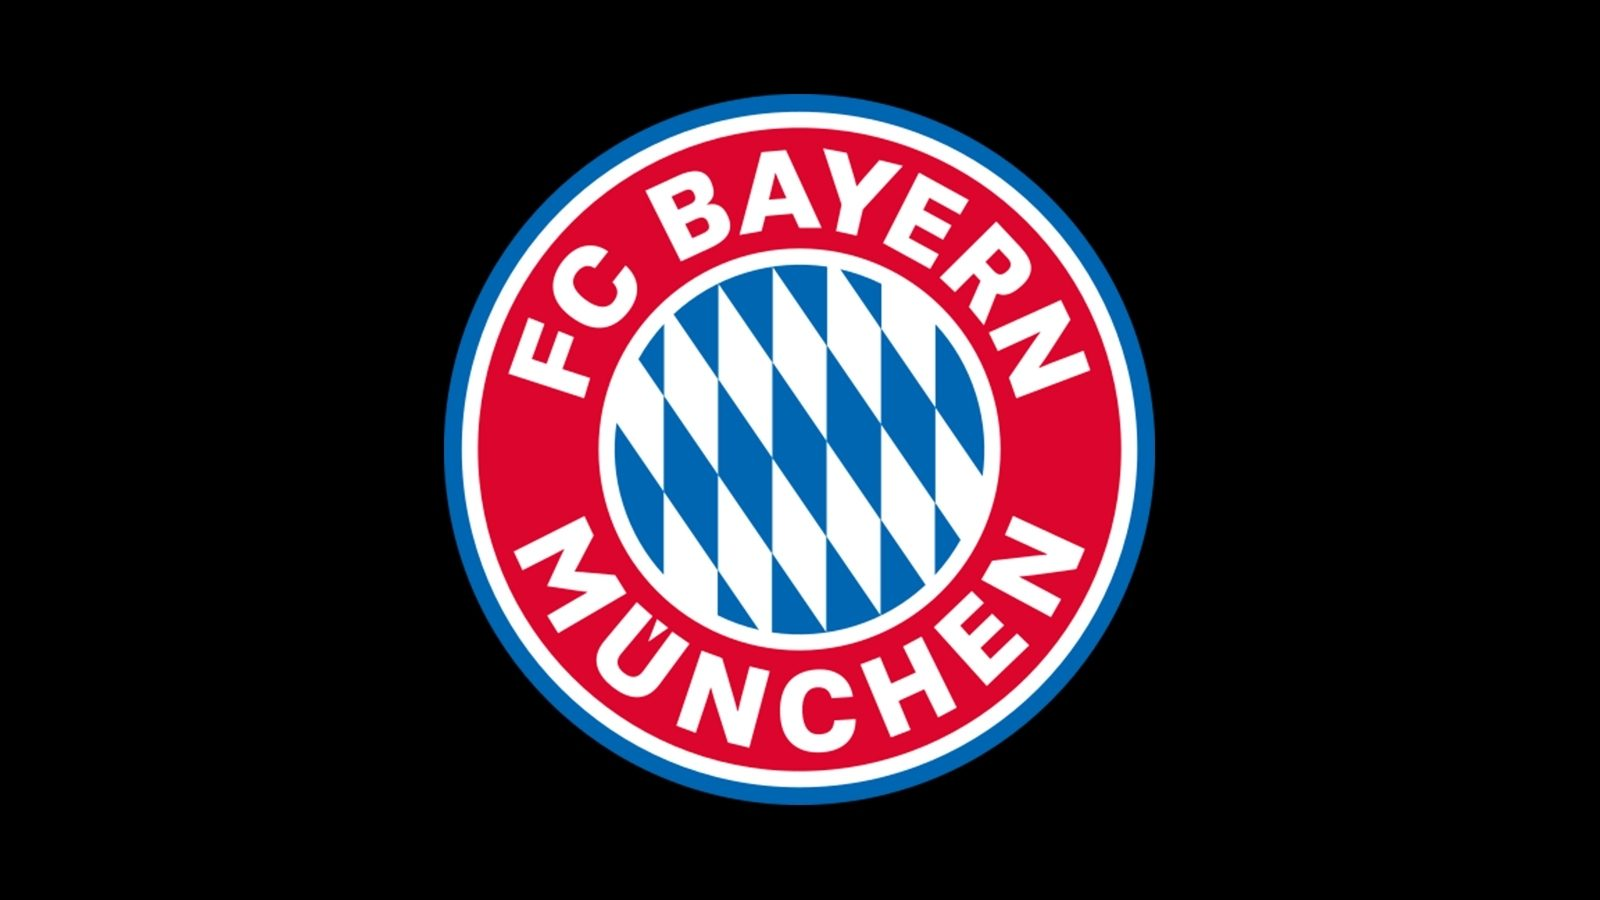 bayern munich - photo #38